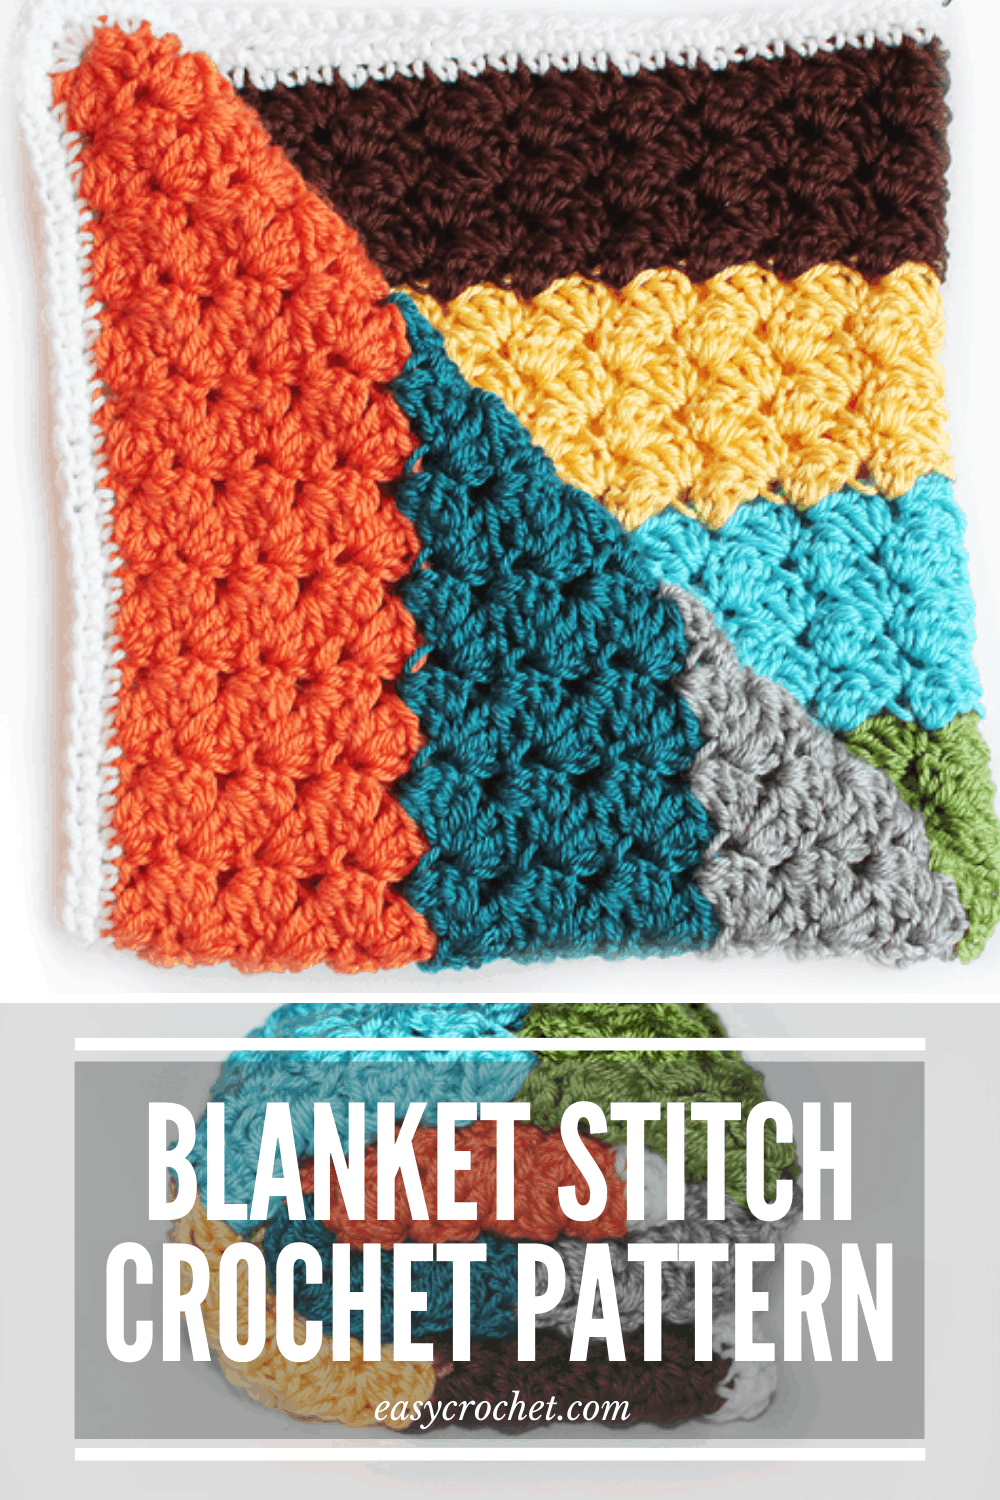 How To Crochet A Blanket Stitch Pattern Easy Crochet